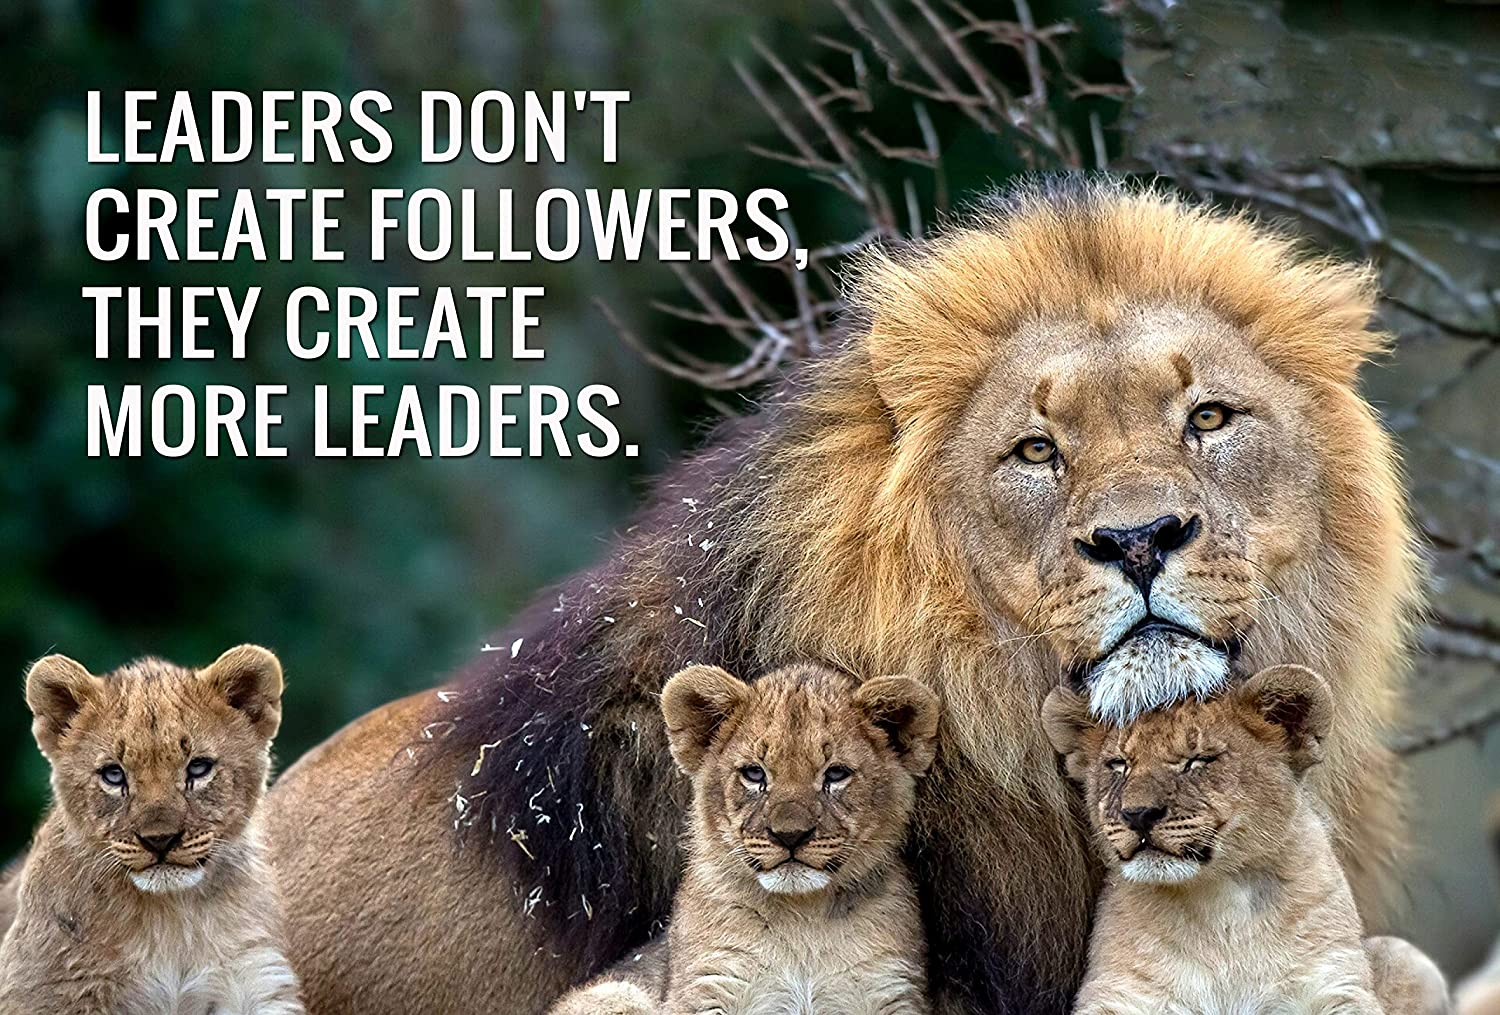 Tallenge Leaders Dont Create Followers They Create More Leaders Business Leadership Inspirational Quote Tom Peters Tallenge Office Motivational Poster Small Poster Paper 12 X 17 Inches Multicolour Amazon In Home Kitchen